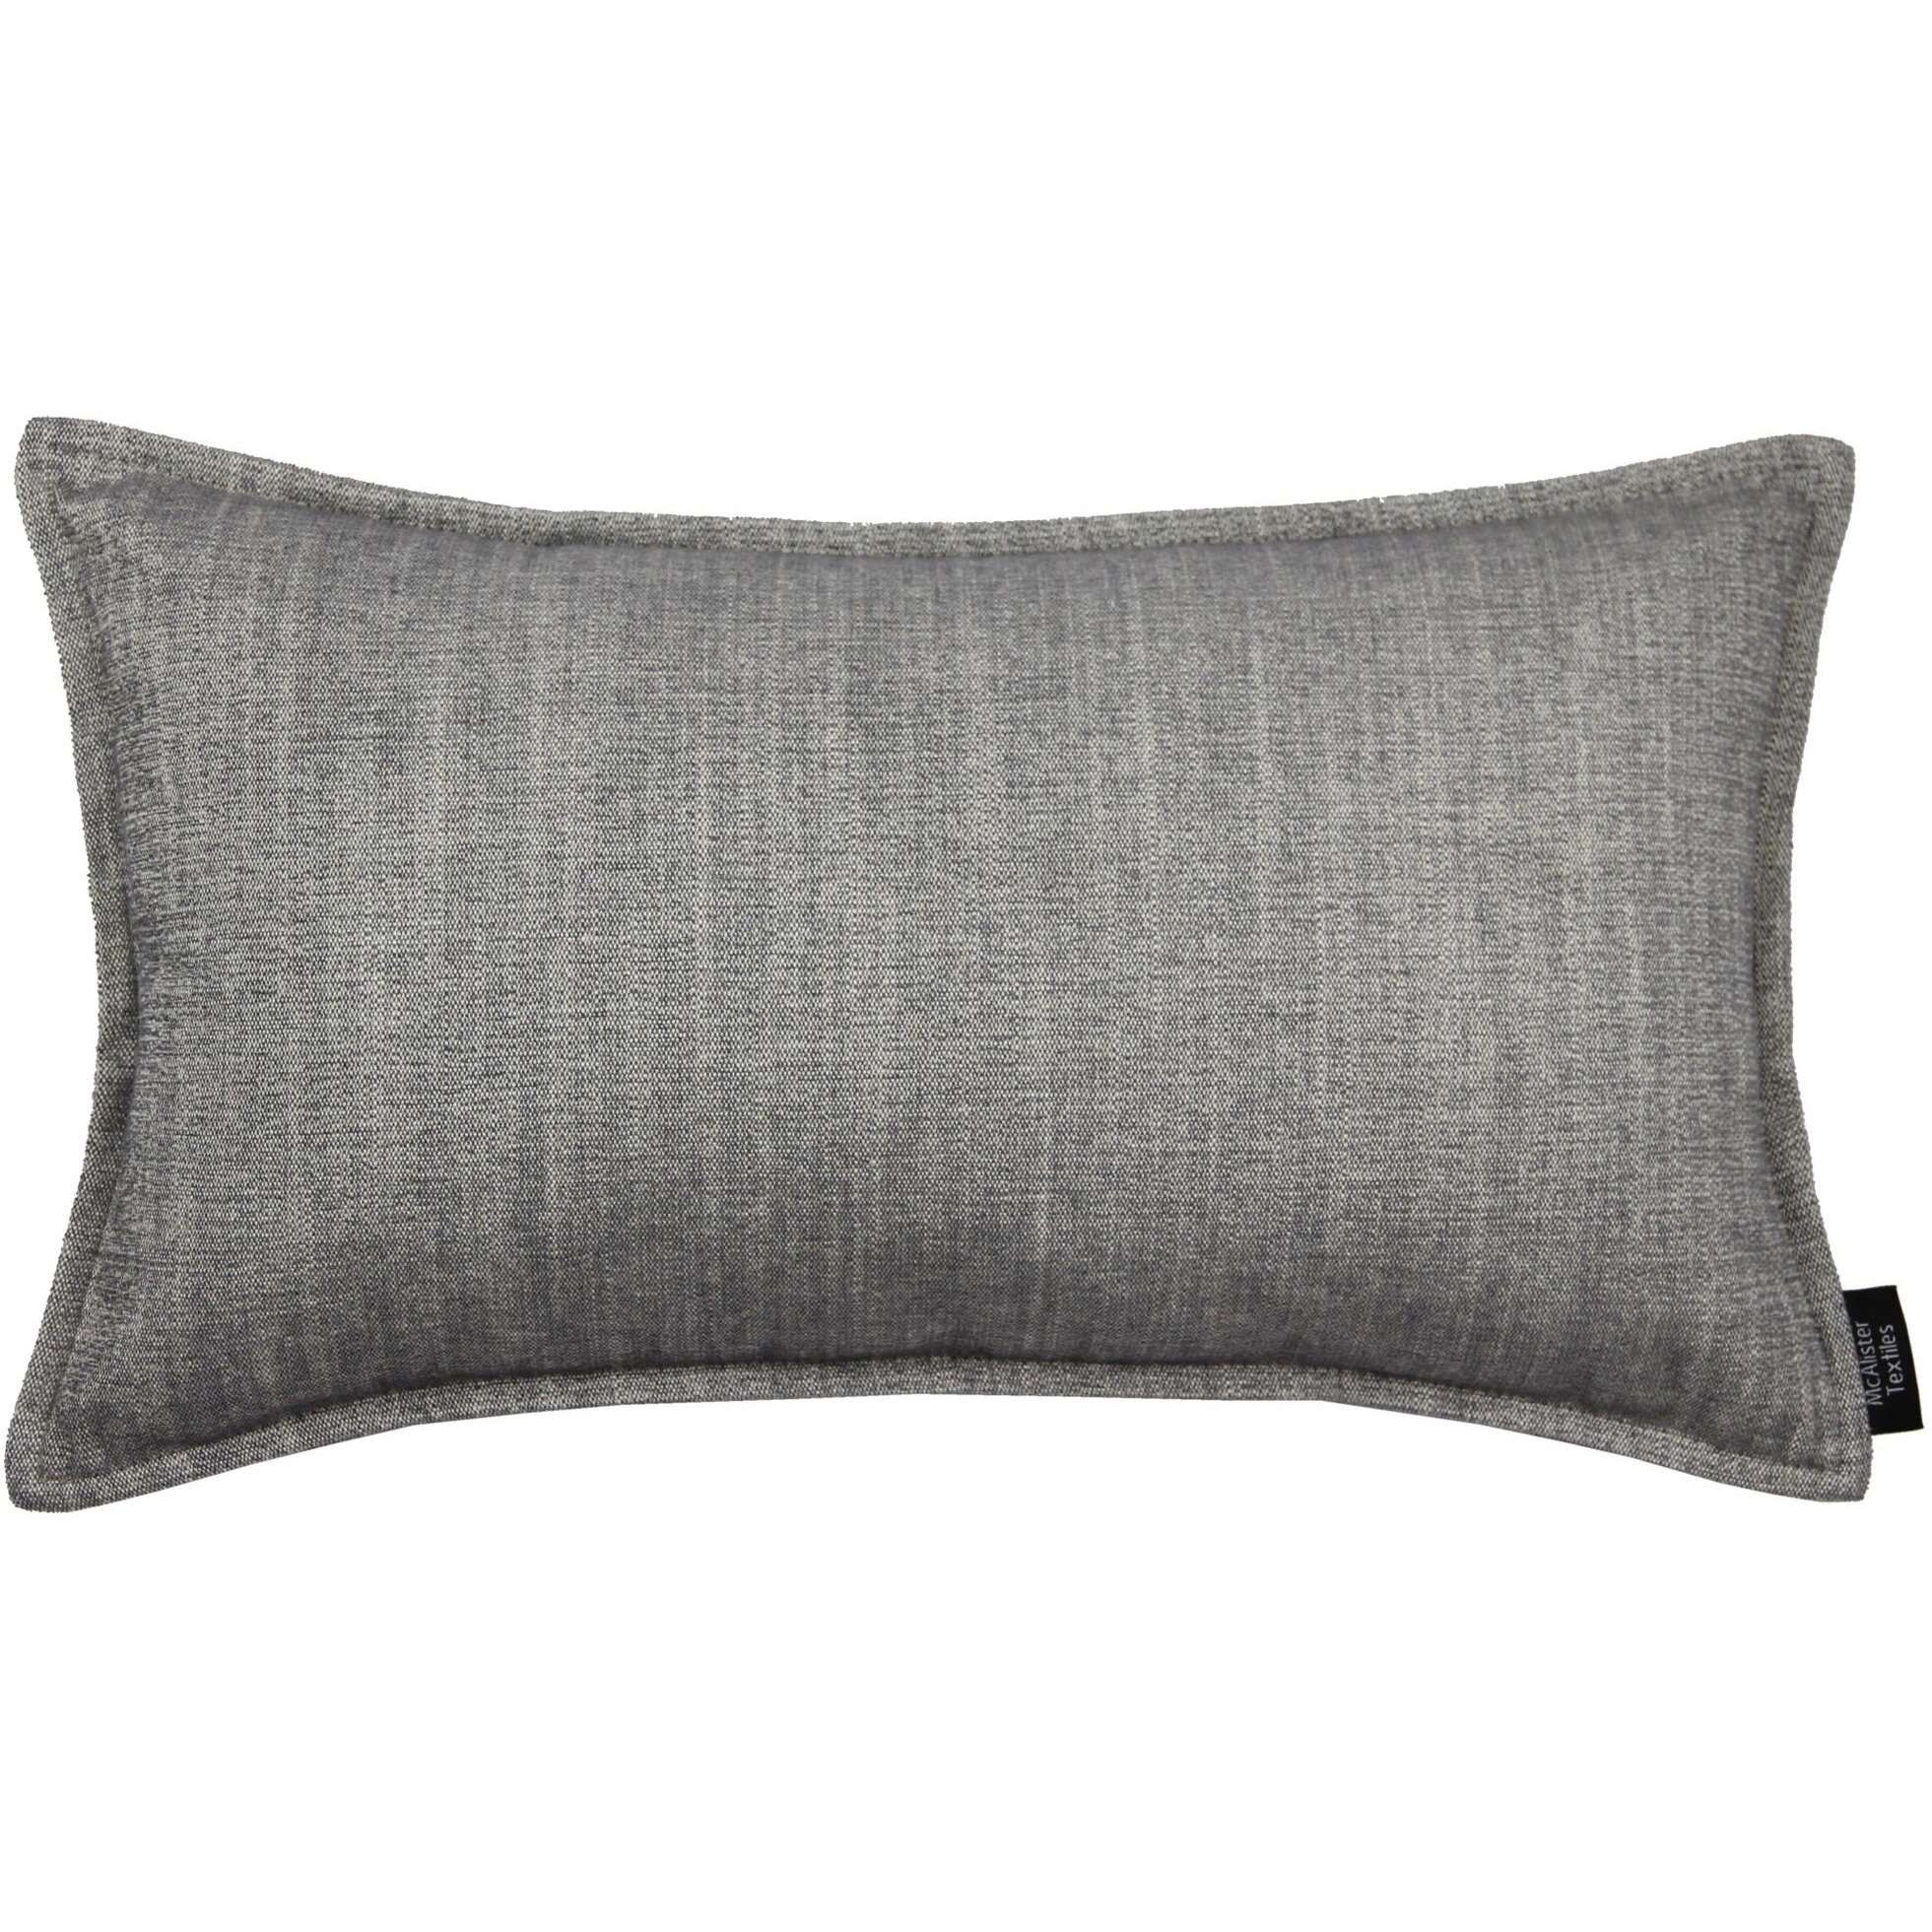 McAlister Textiles Rhumba Charcoal Grey Pillow Pillow Cover Only 50cm x 30cm